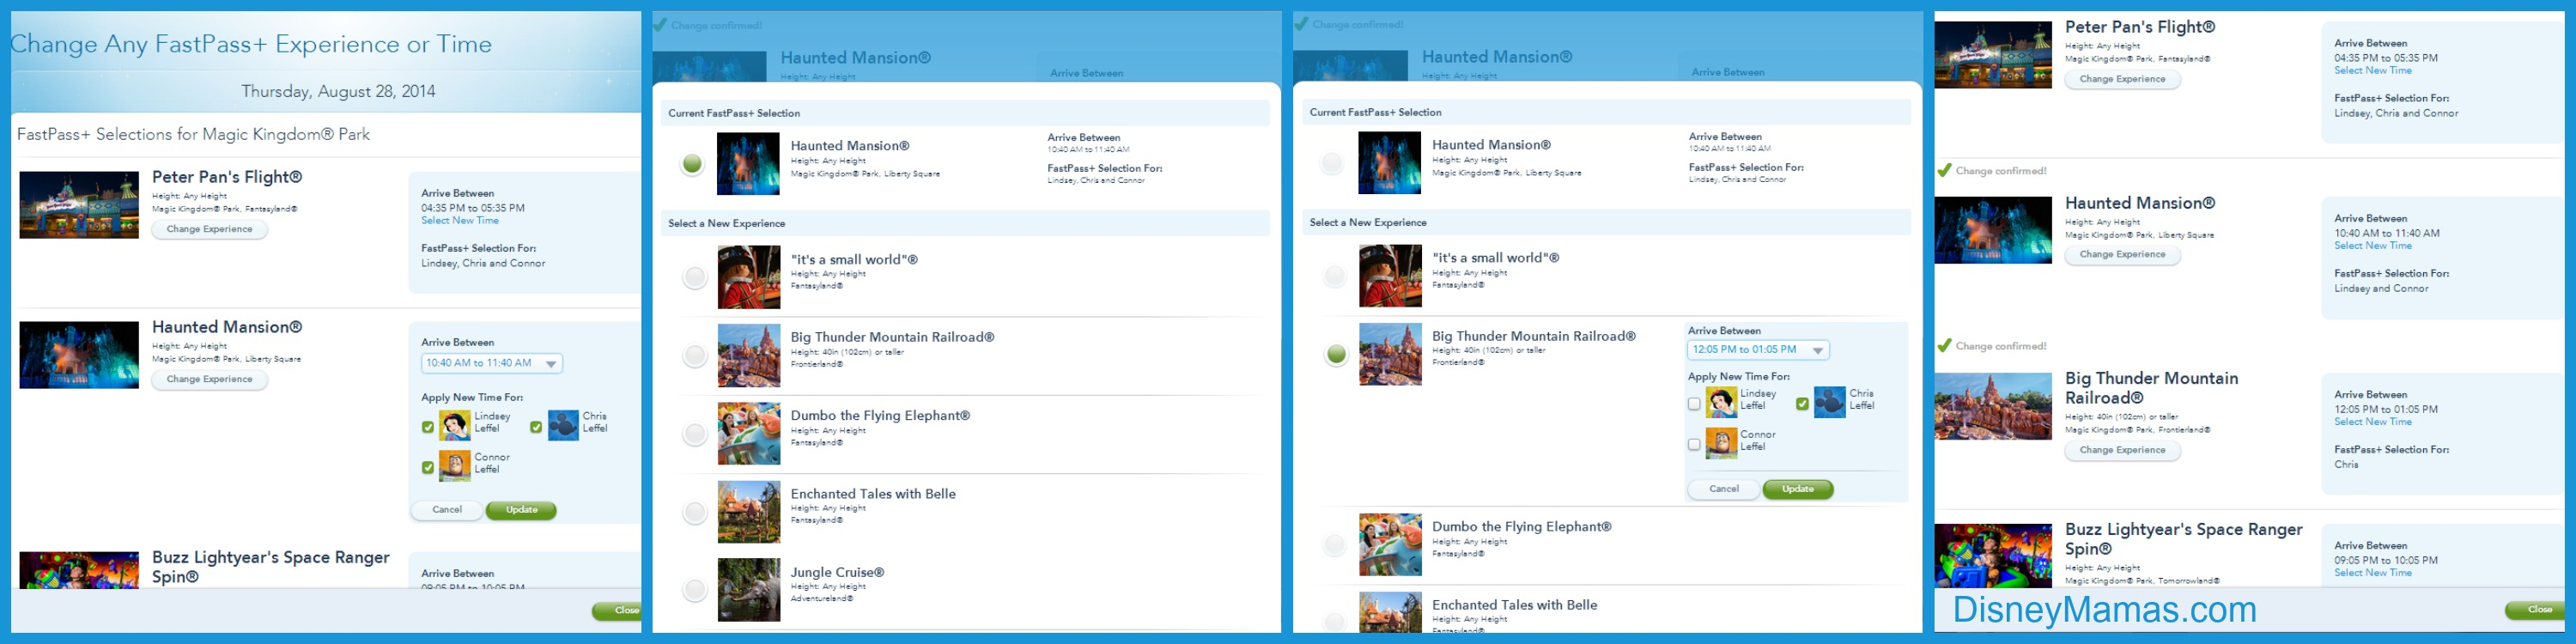 How to modify your existing FastPass+ reservations